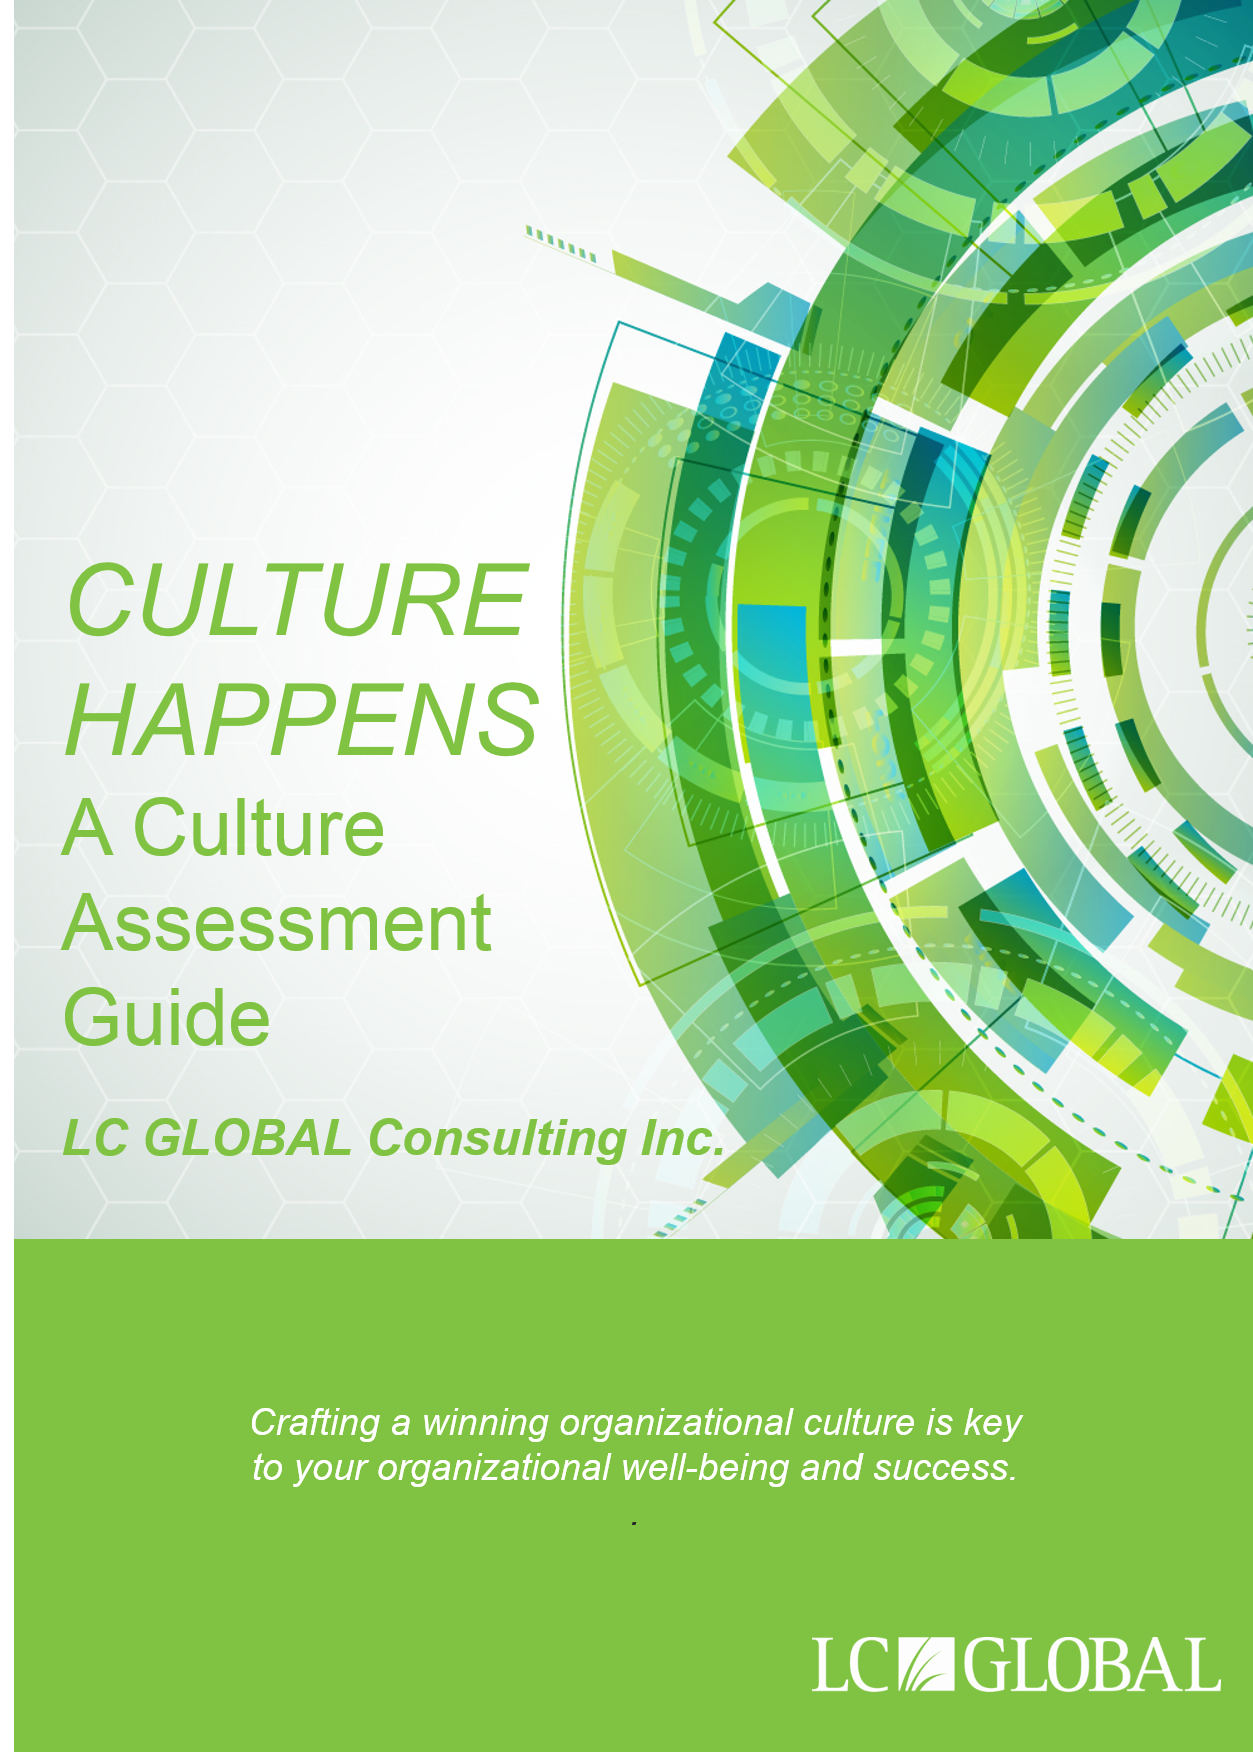 CULTURE_HAPPENS_-_ORGANIZATIONAL_CULTURE_ASSESSMENT_GUIDE_-_LC_GLOBAL_Consulting_Inc__2015.jpg.png